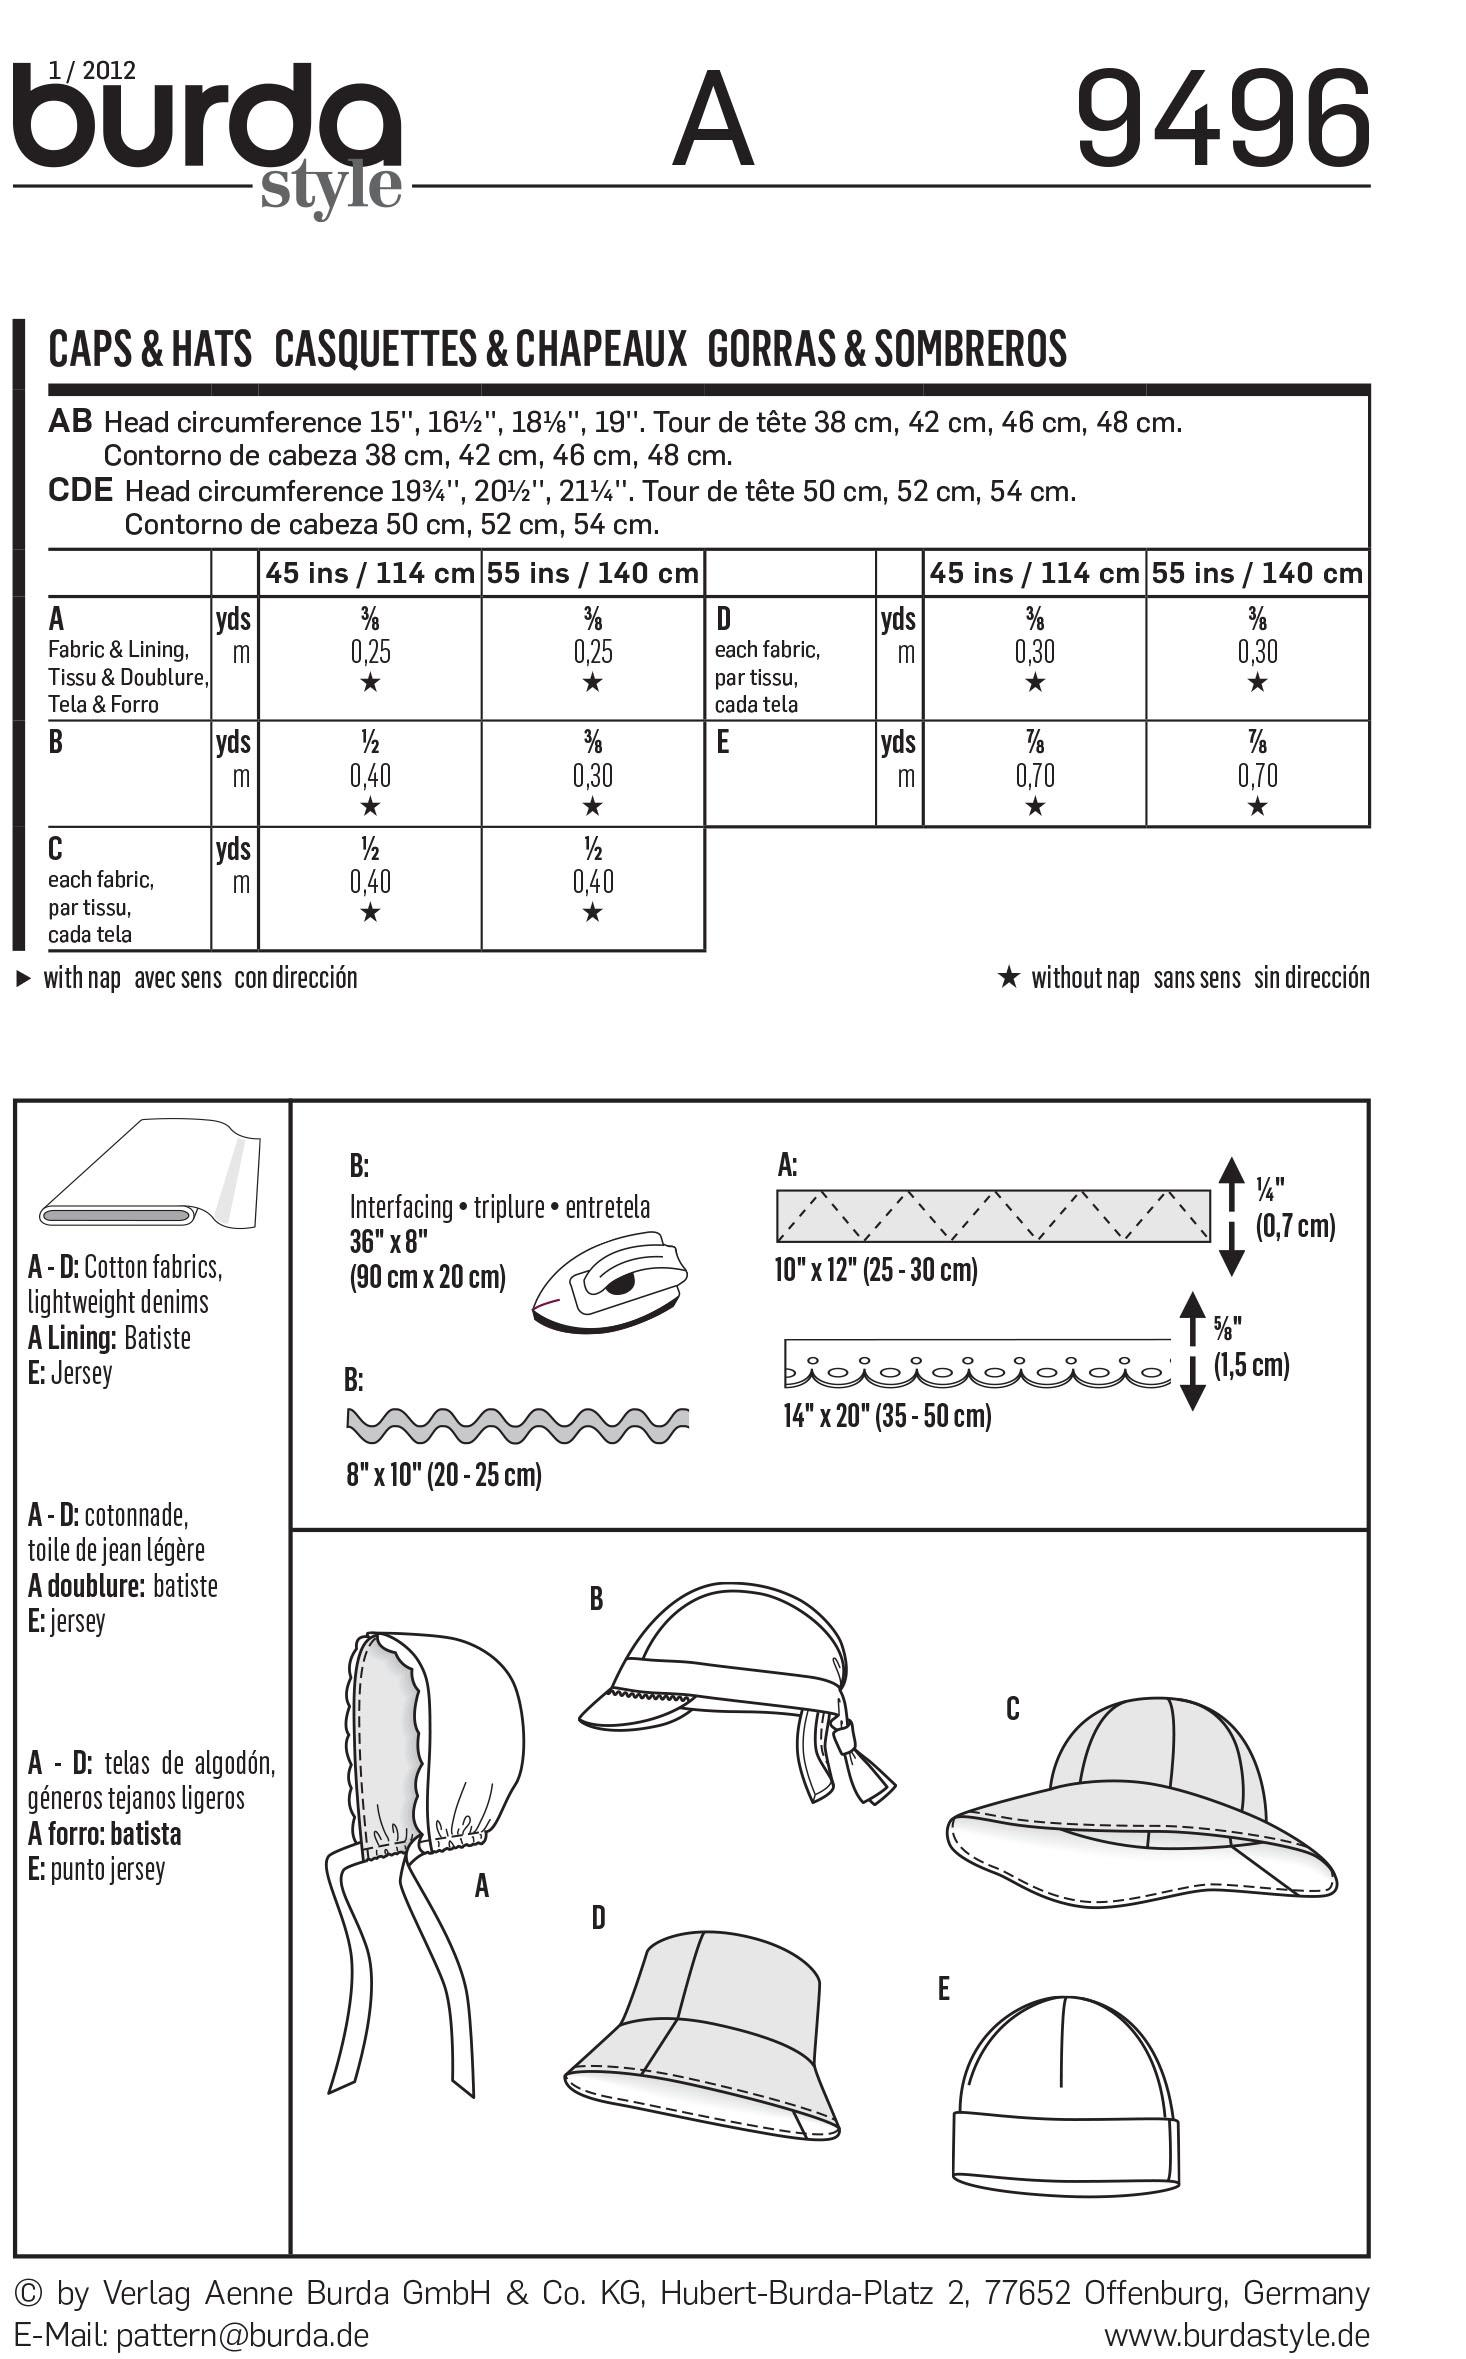 BurdaB9496 Style Caps & Hats Sewing Pattern